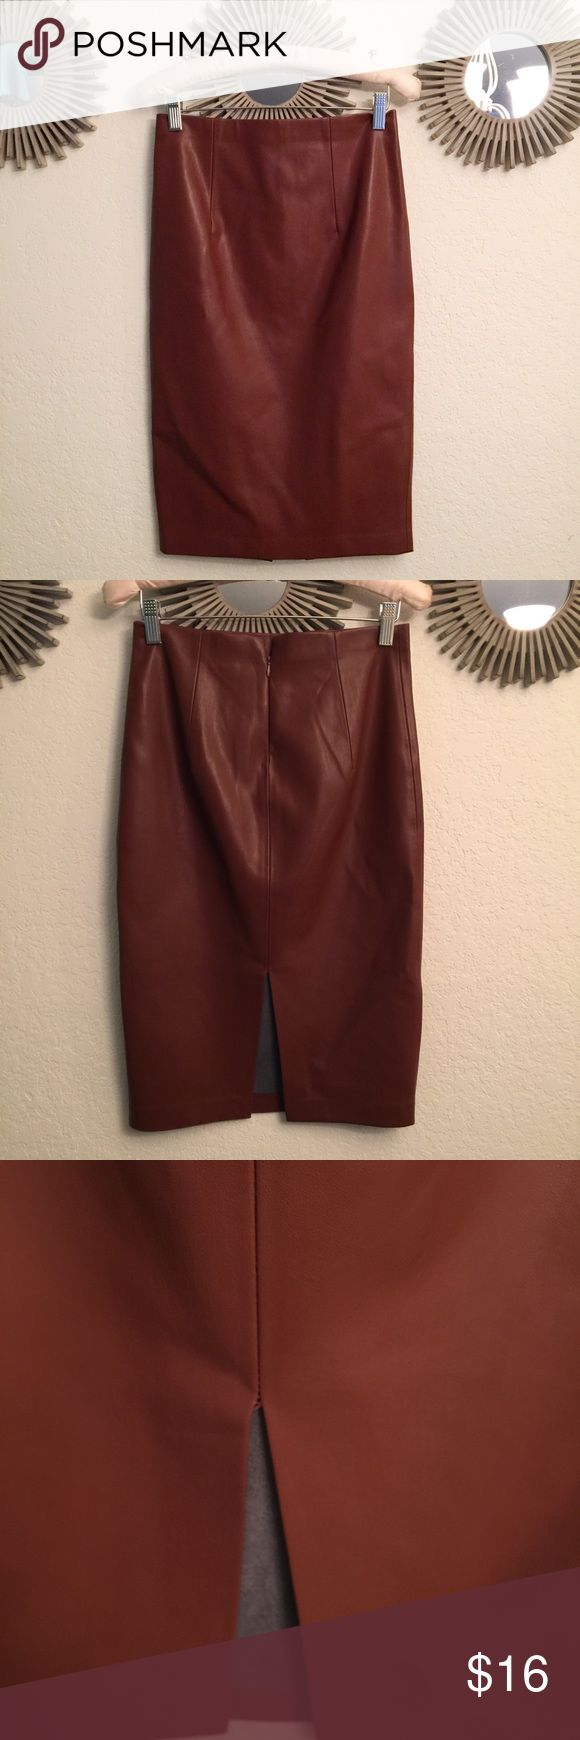 💗Faux leather pencil skirt. Buttery soft Super soft faux leather brown pencil skirt. Worn 2-3 times. Like new condition. Super cute with a cream blouse and heels. From forever 21 contemporary line Forever 21 Skirts Pencil